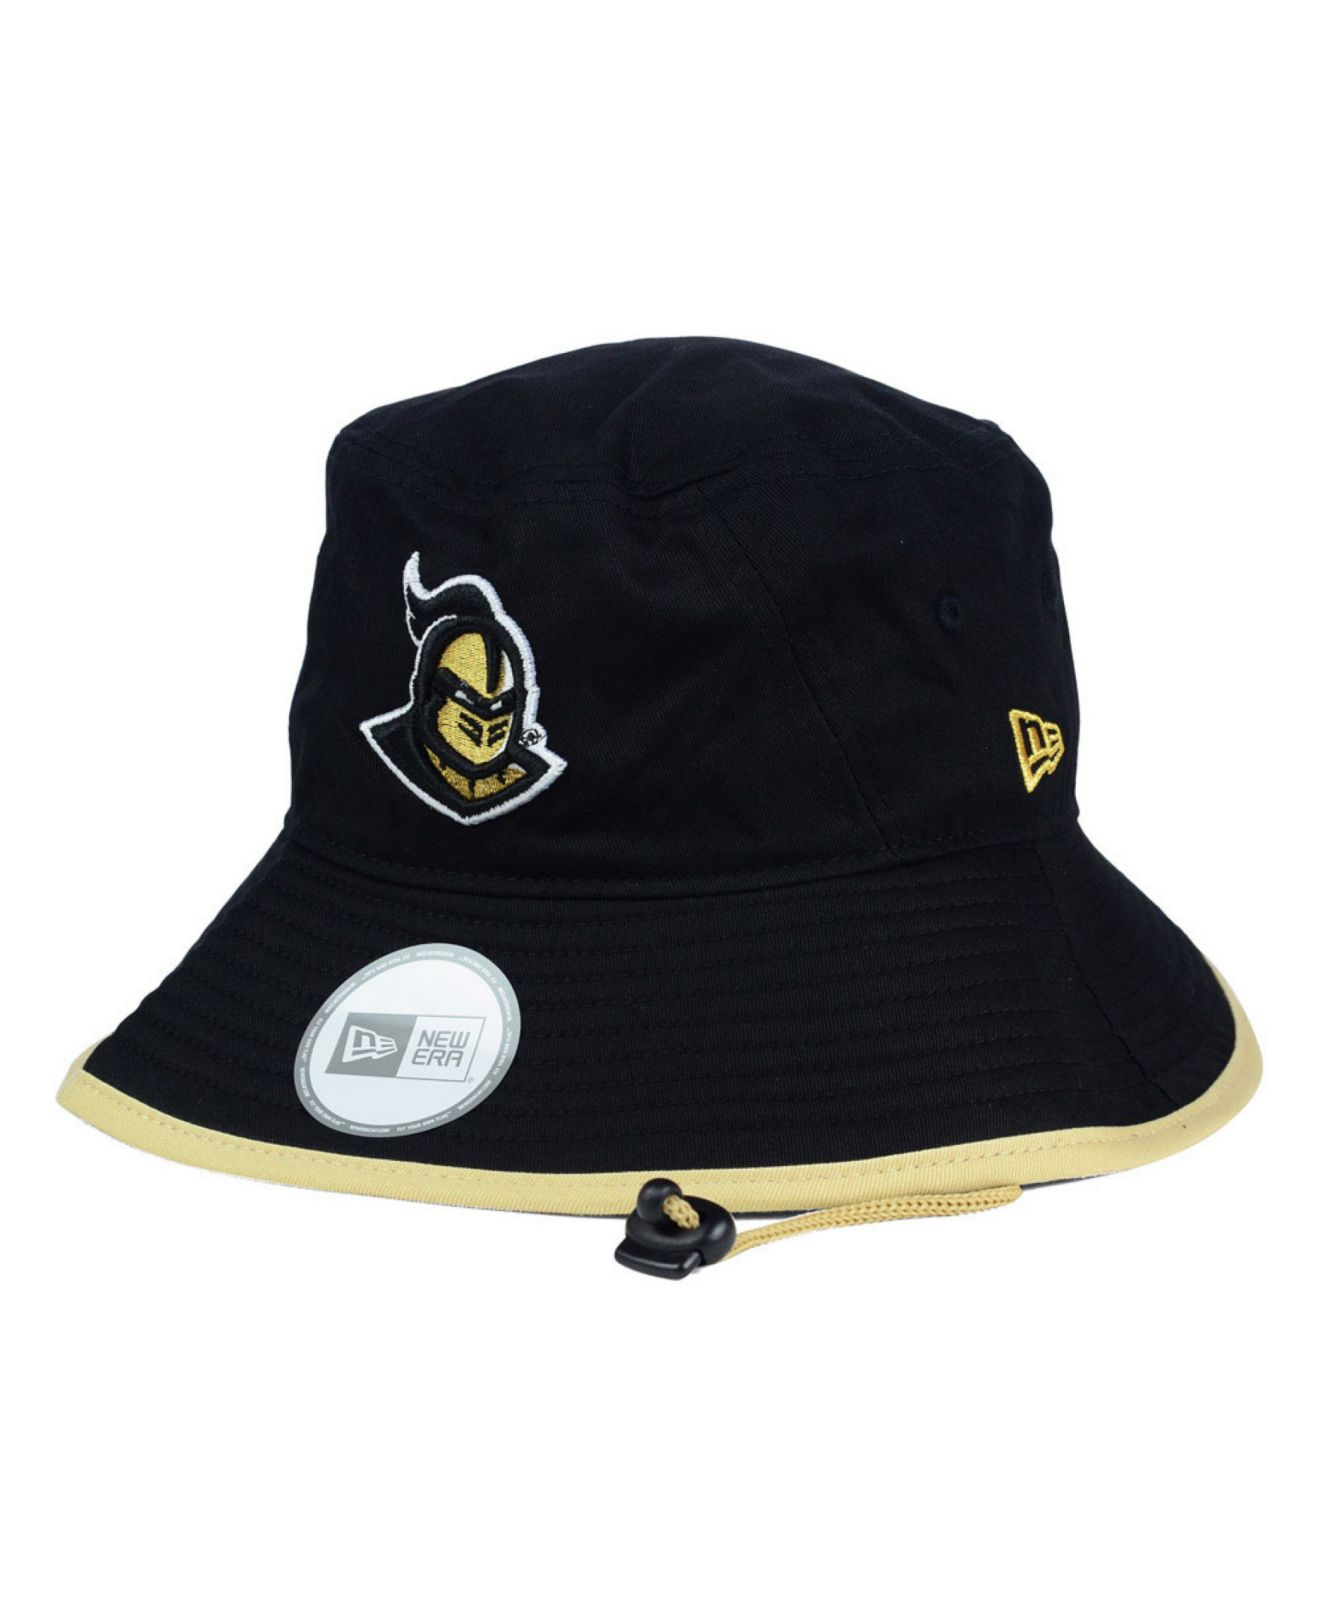 60474c066ef Lyst - KTZ Ucf Knights Tip Bucket Hat in Black for Men